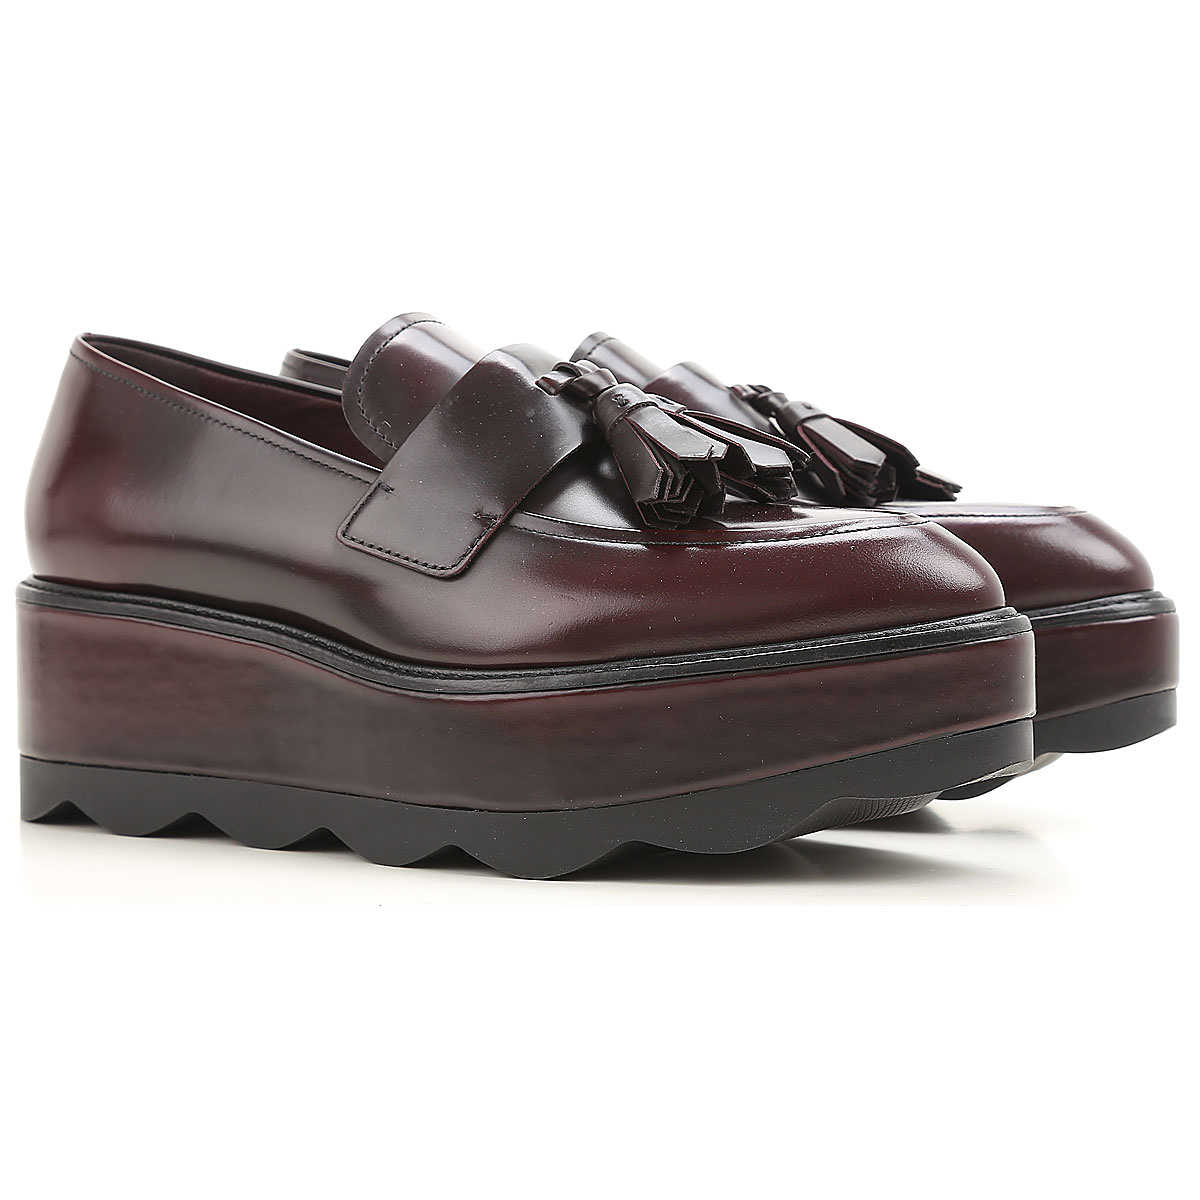 Prada Loafers for Women On Sale in Outlet Cordovan DK - GOOFASH - Womens FLAT SHOES